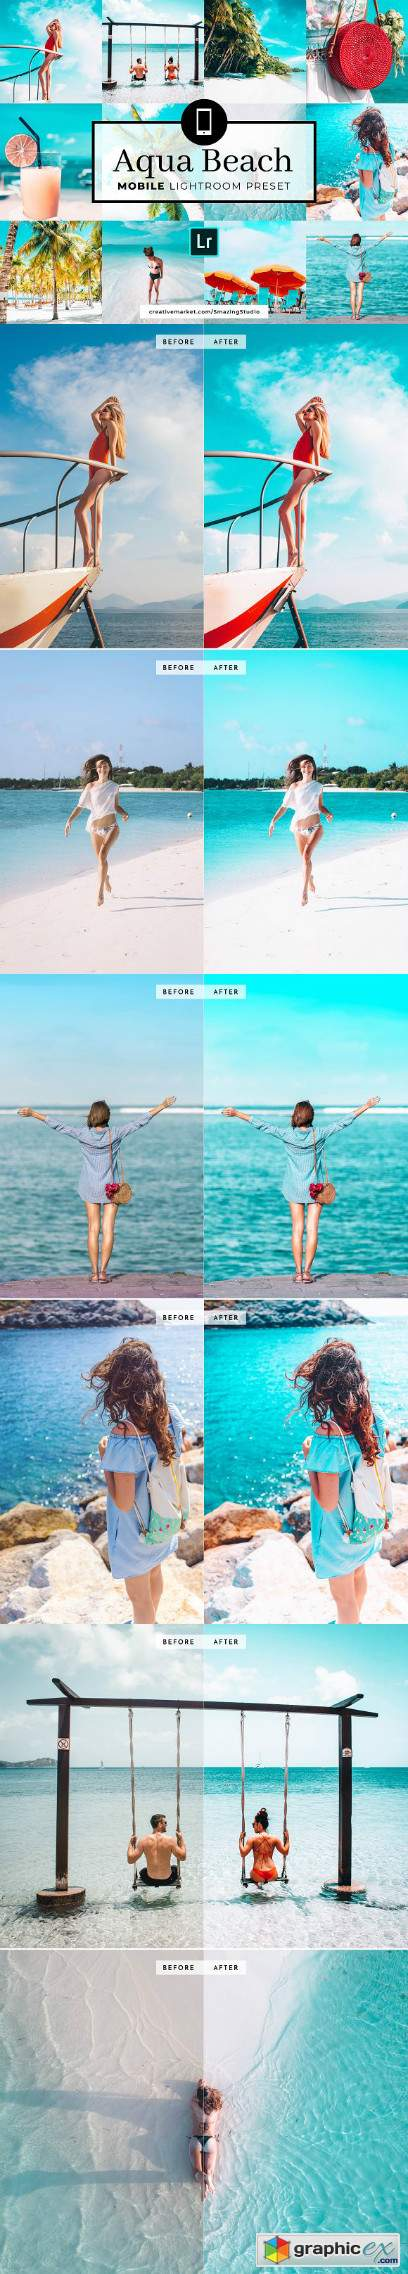 Mobile Lightroom Preset Aqua Beach » Free Download Vector Stock